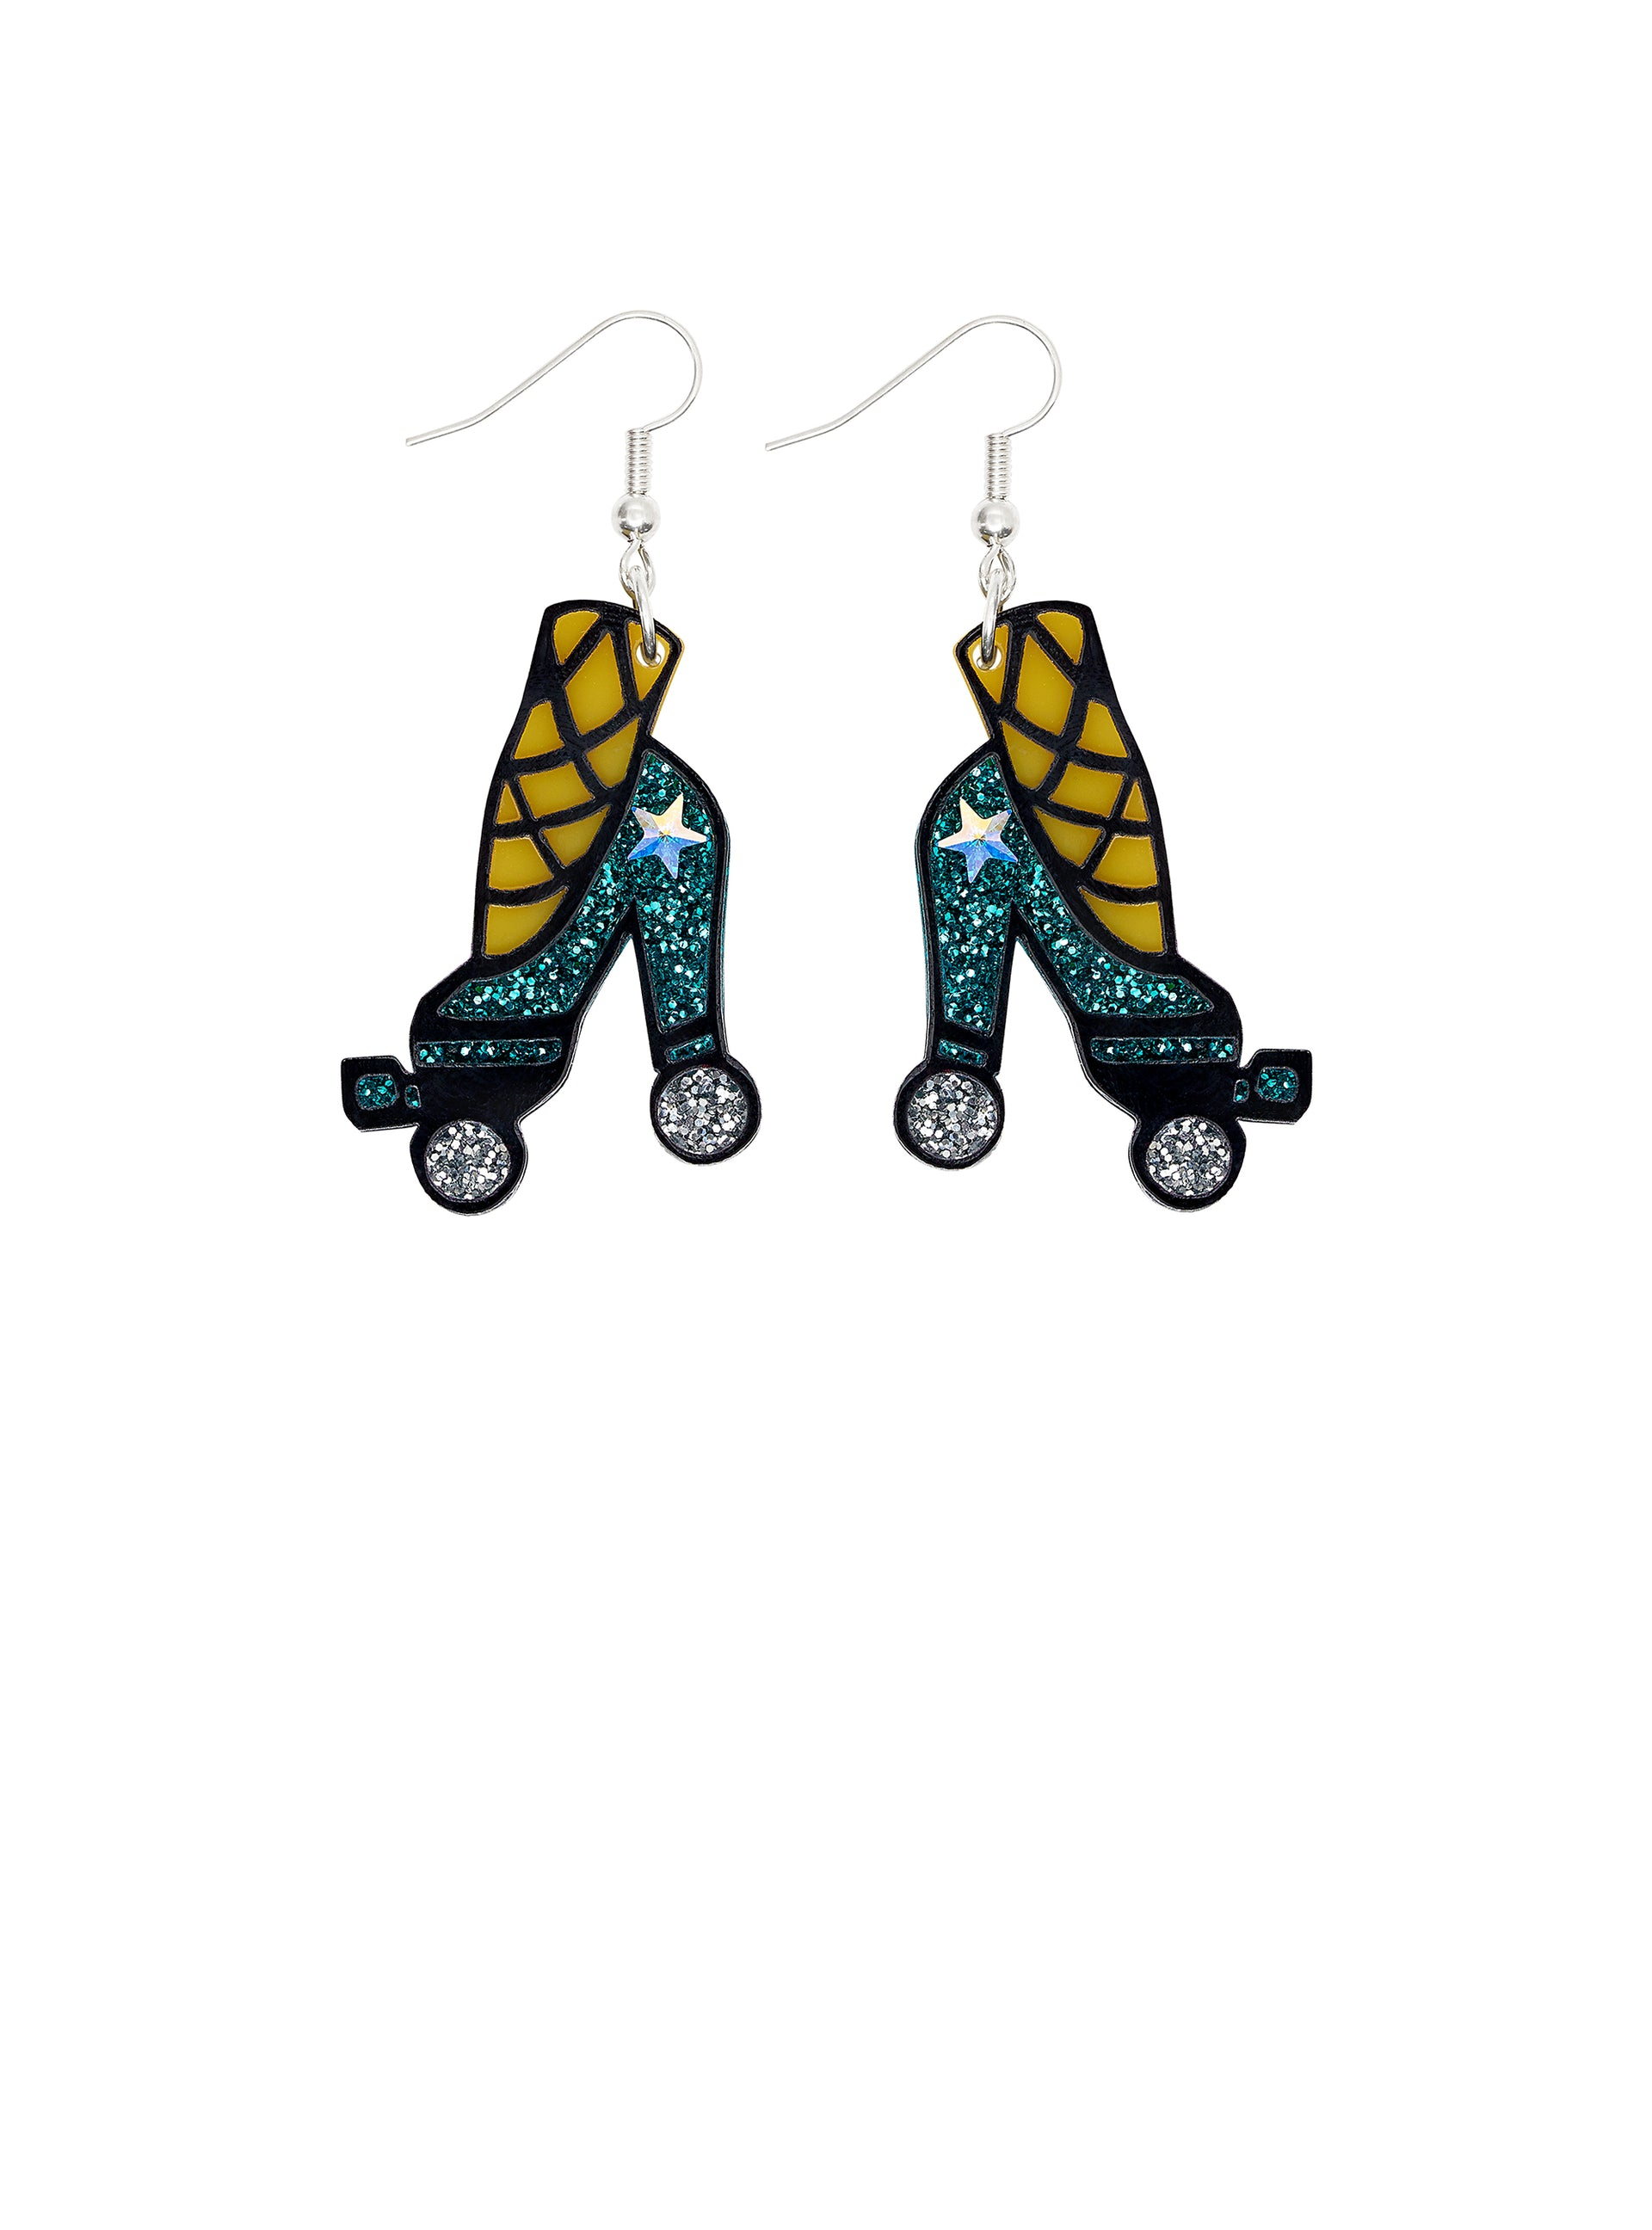 Roller Heels Earrings